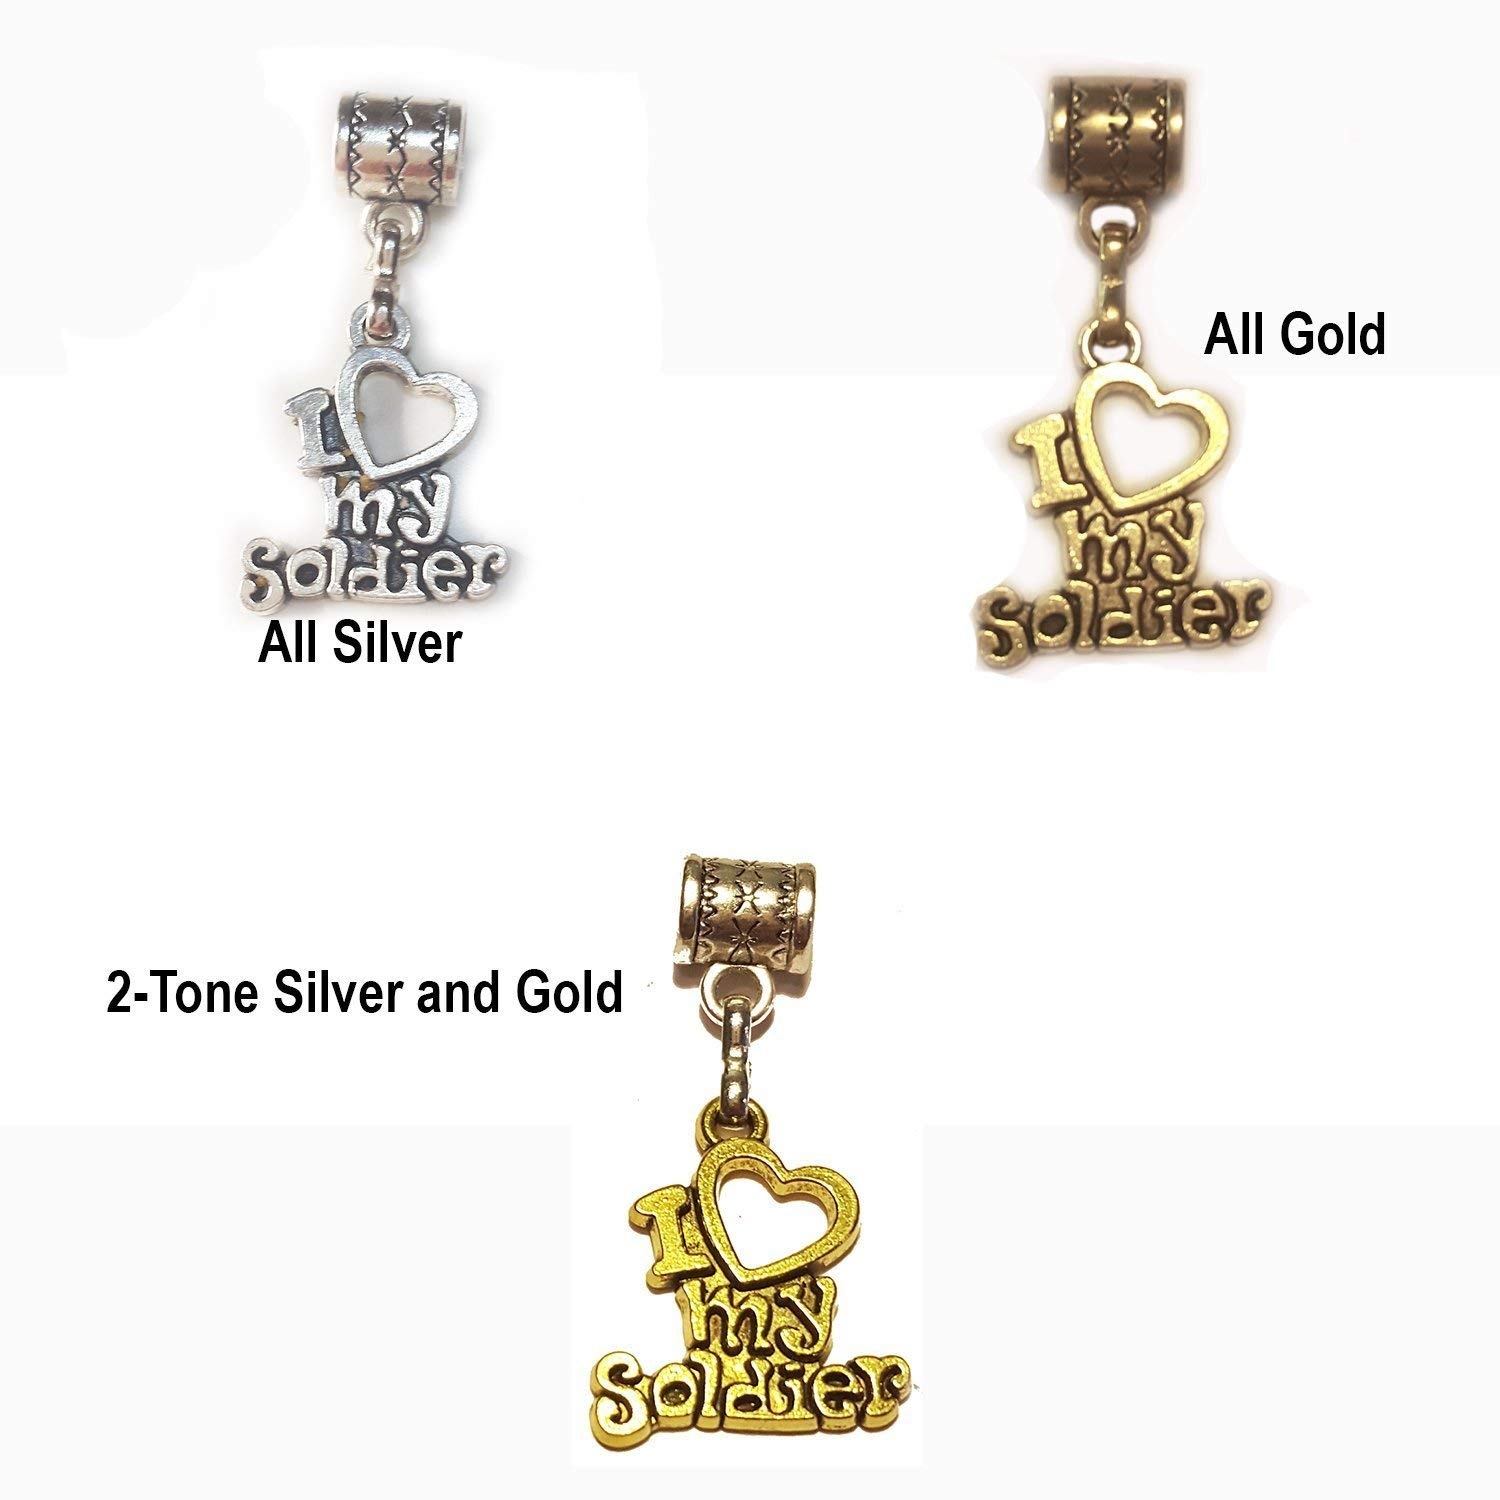 """I Love My Soldier"" antique silver charm, all gold charm or 2-tone silver and gold Hanging charm for large hole style snake chain charm bracelet, or add to a neck chain, or key chain"